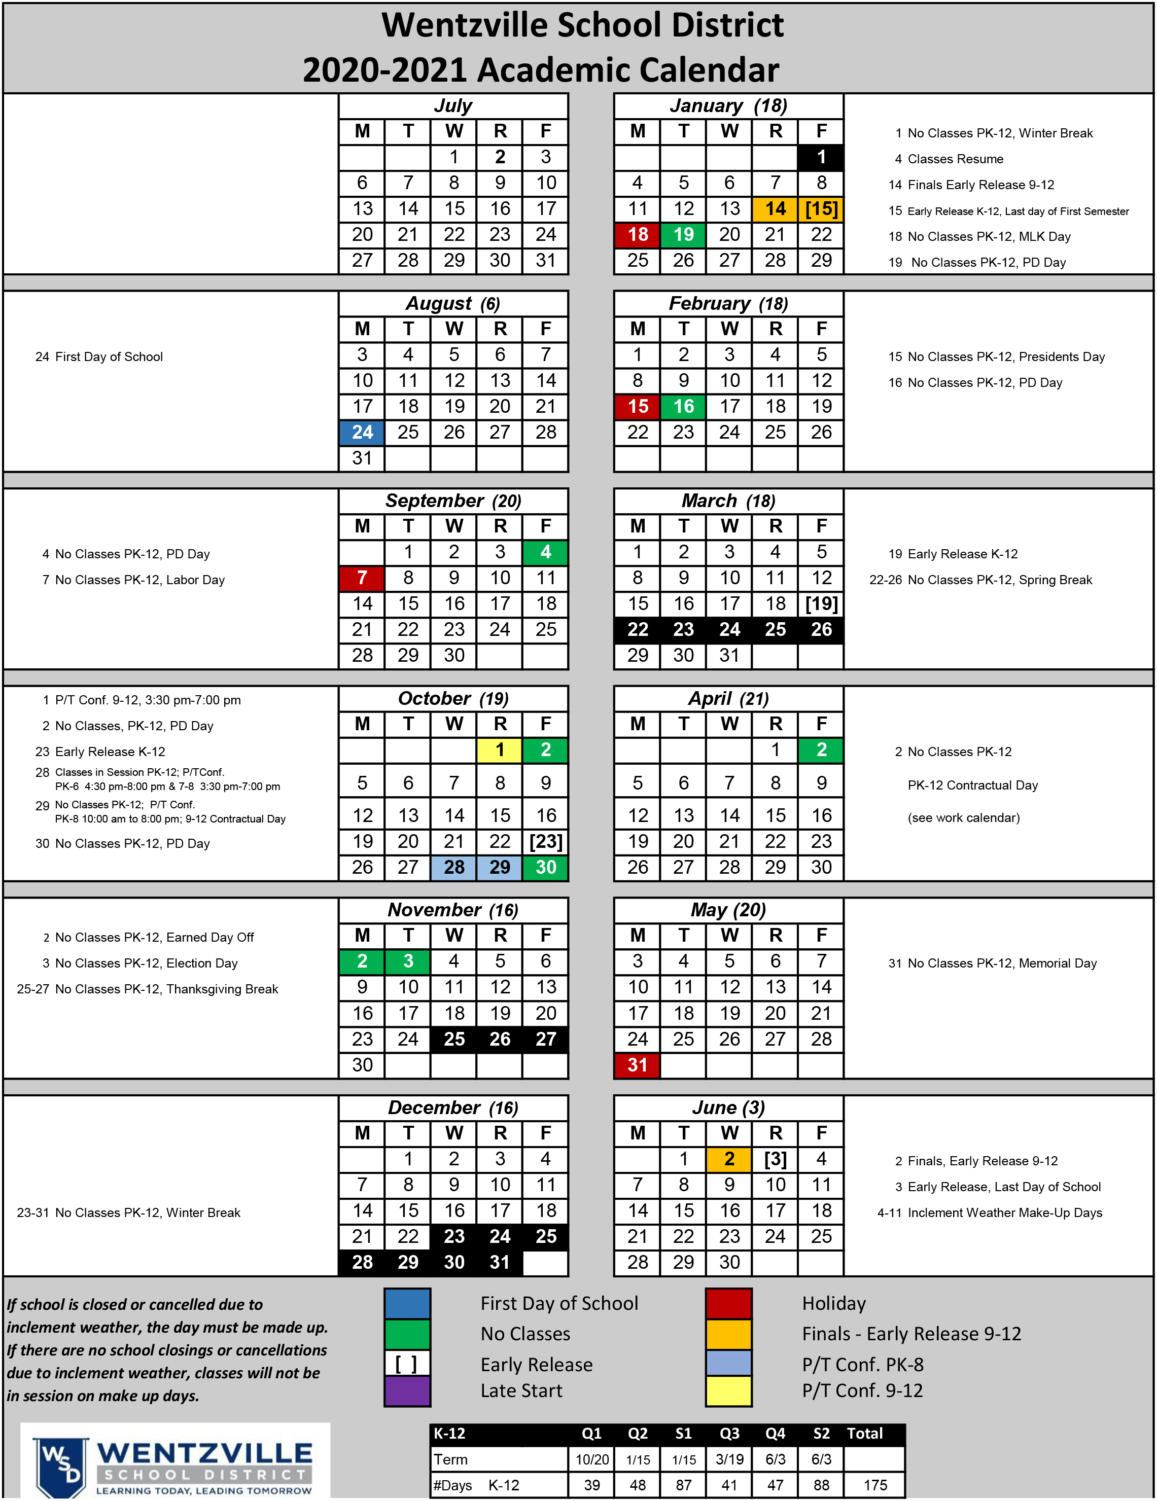 The 2020-2021 Wentzville School District academic calendar revision. The first day of school will be on Aug. 24.